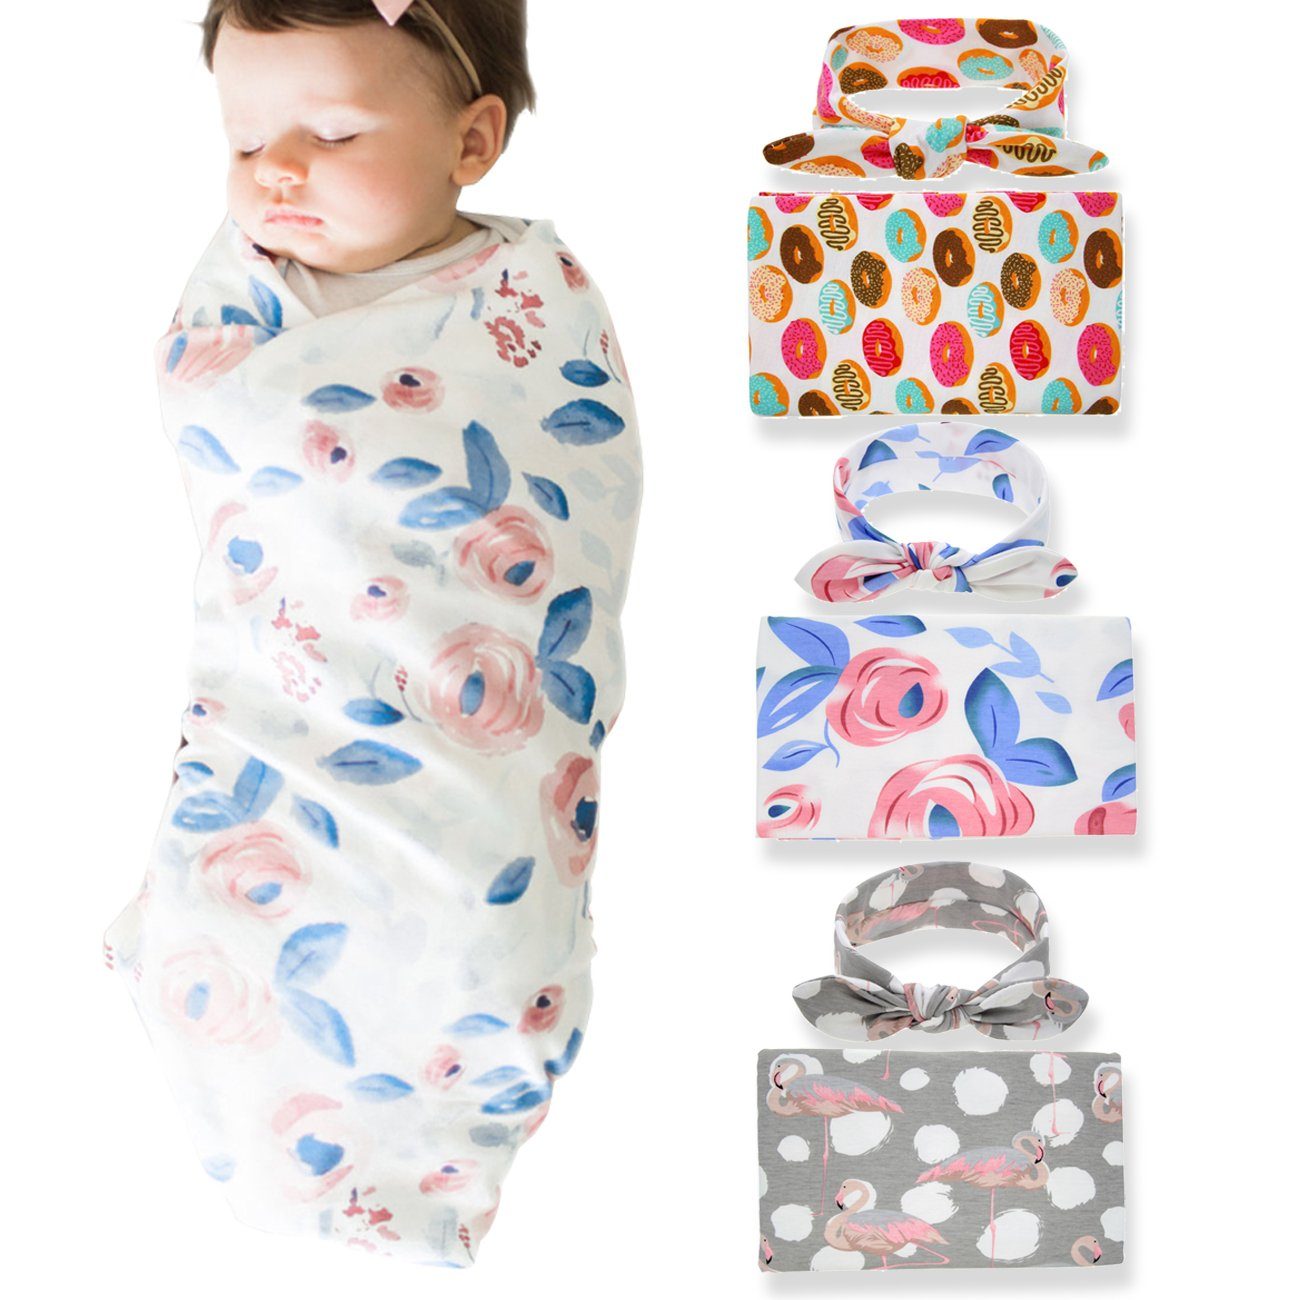 DRESHOW Newborn Floral Swaddle BQUBO Receiving Blanket with Headbands Hats Sleepsack Toddler Warm IC0003 IC0003-11